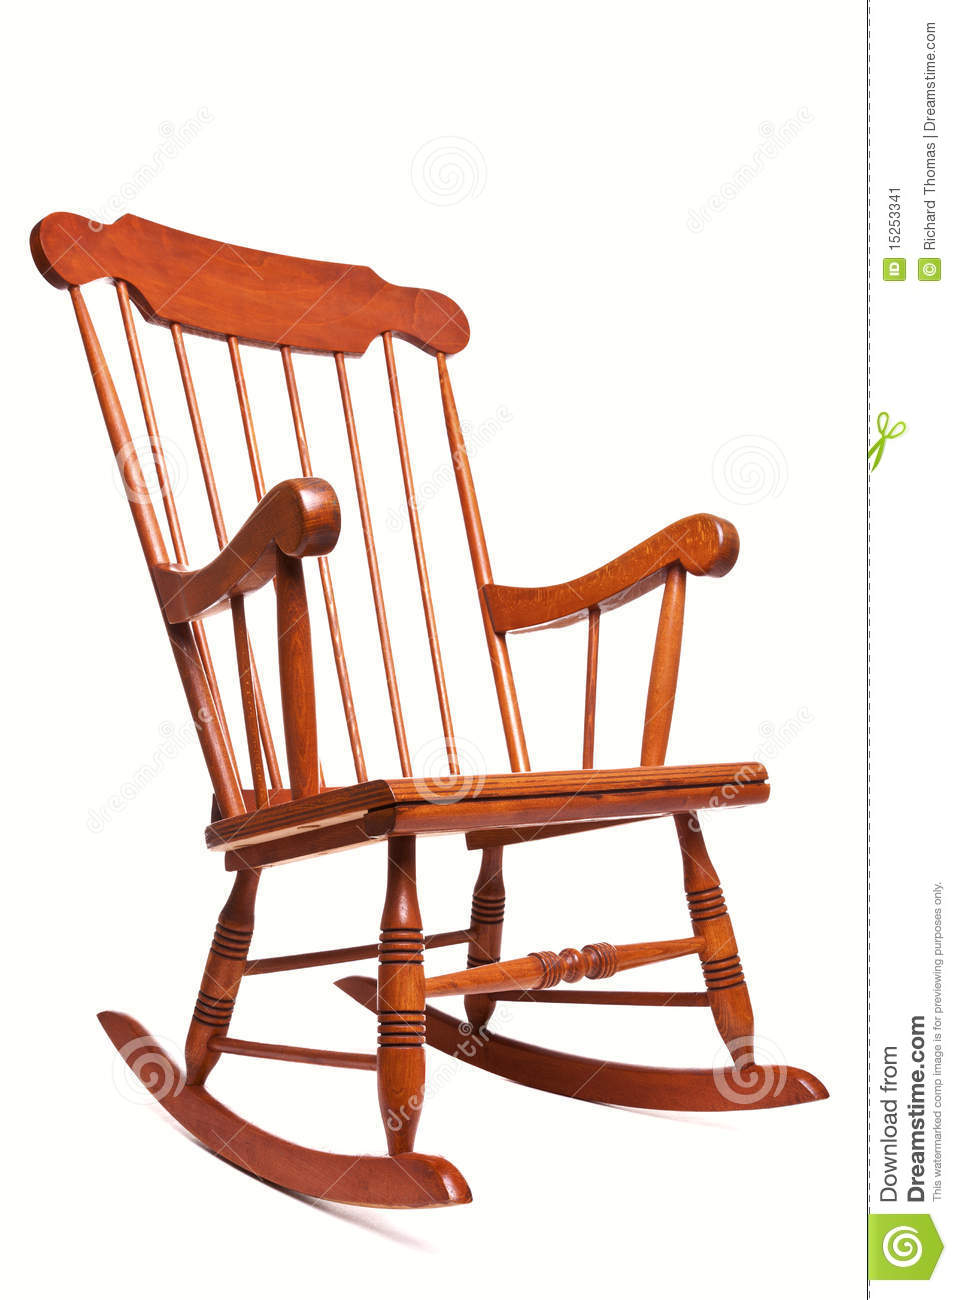 Rocking chair clipart suggest